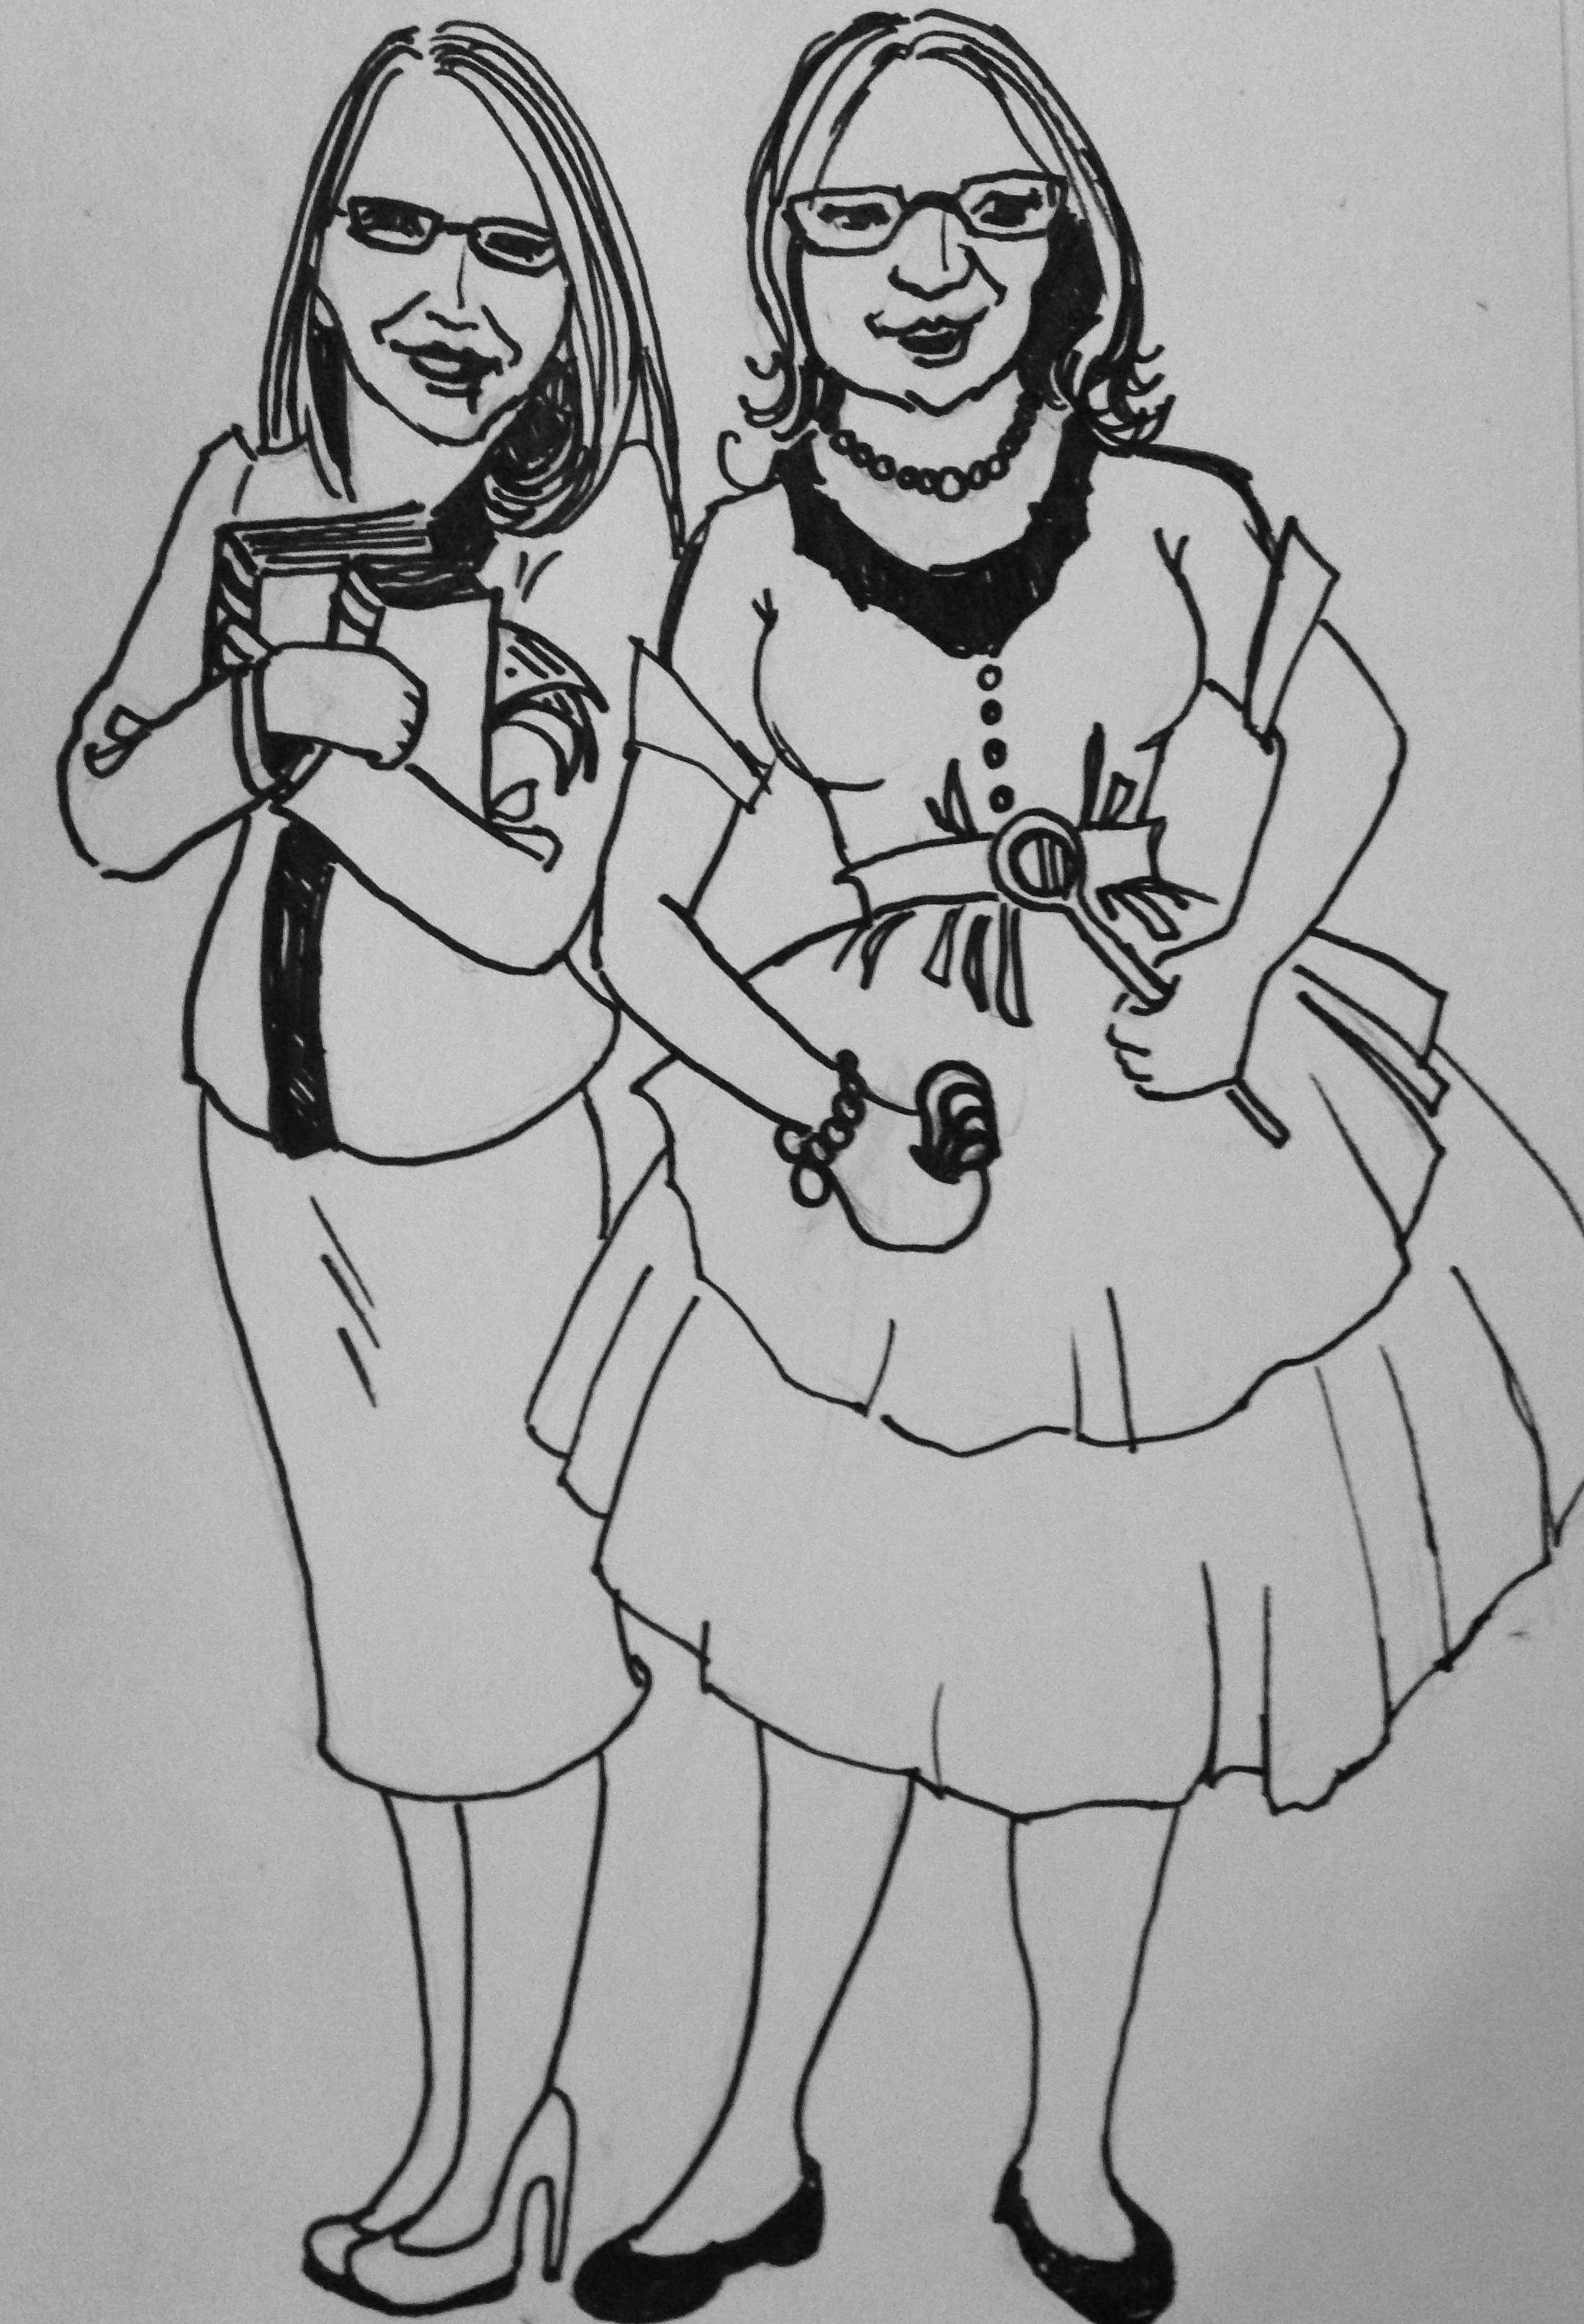 Me (clutching books) and My Sister, Diana. (Drawing by Donna Craig)